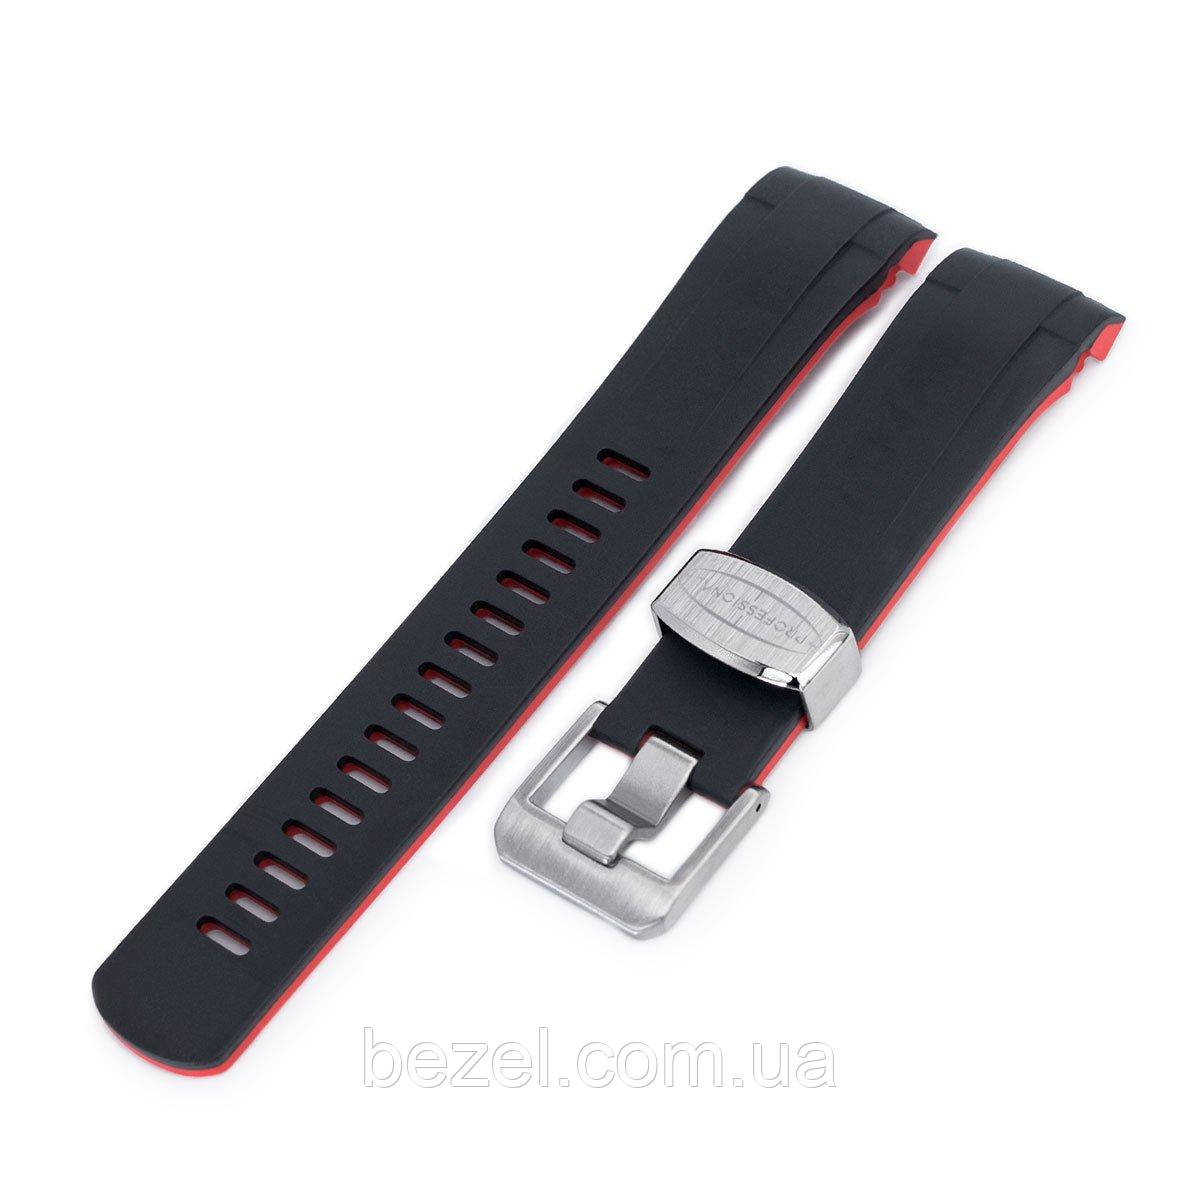 22mm Crafter Blue - Dual Color Red & Black Rubber Curved Lug Watch Strap for Tudor Black Bay M79230